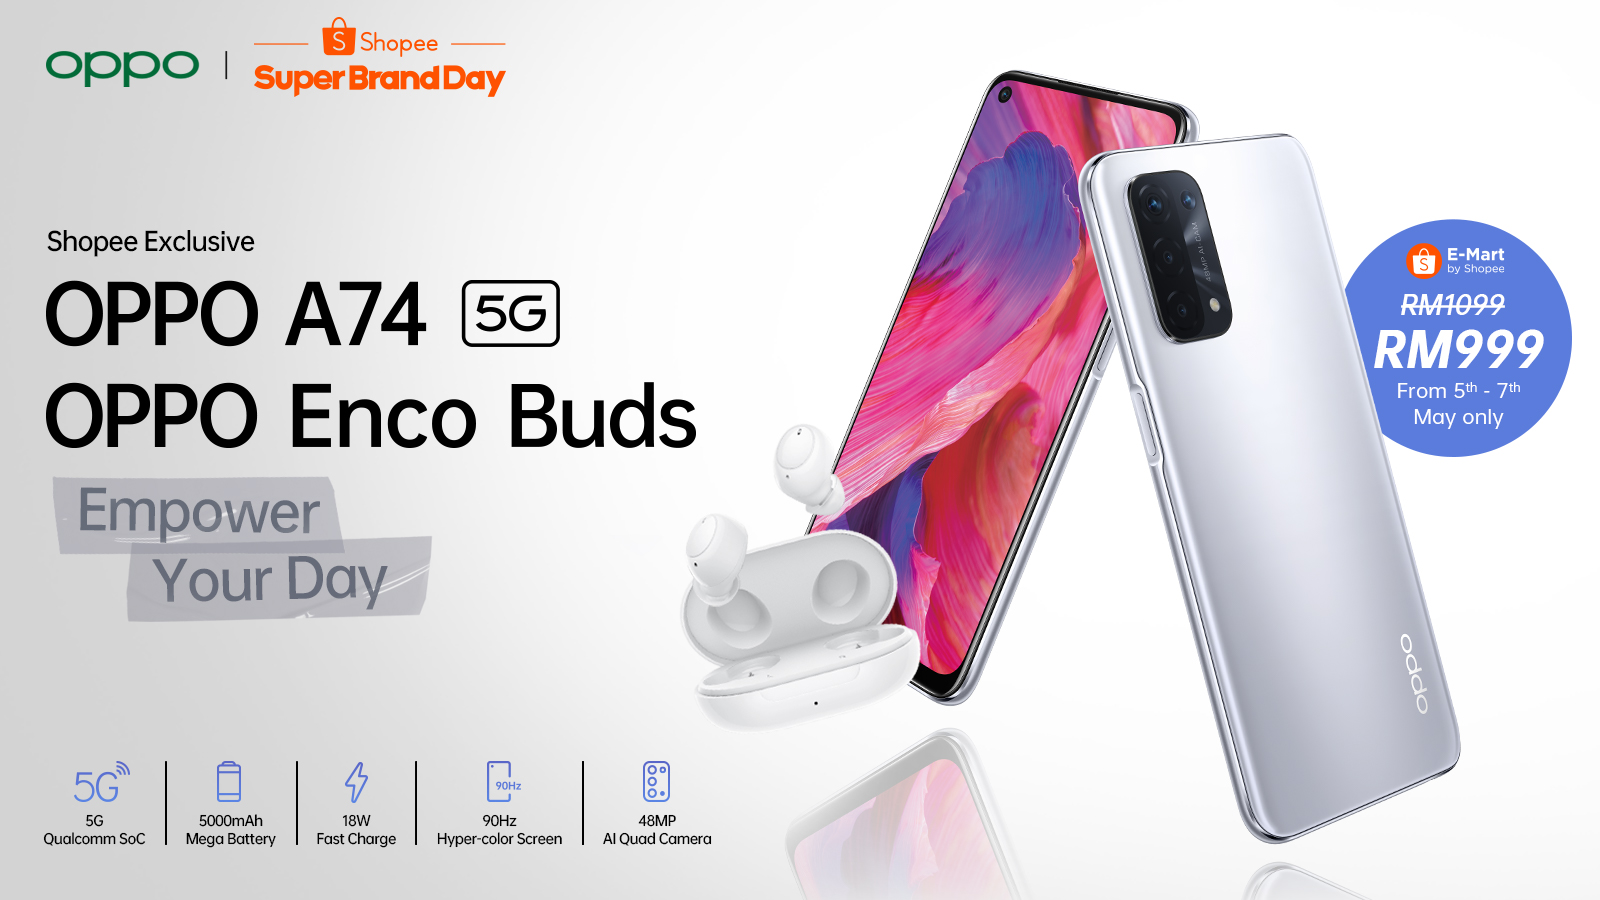 OPPO launches the A74 5G smartphone and Enco Buds exclusively on Shopee at its first regional Super Brand Day Sale